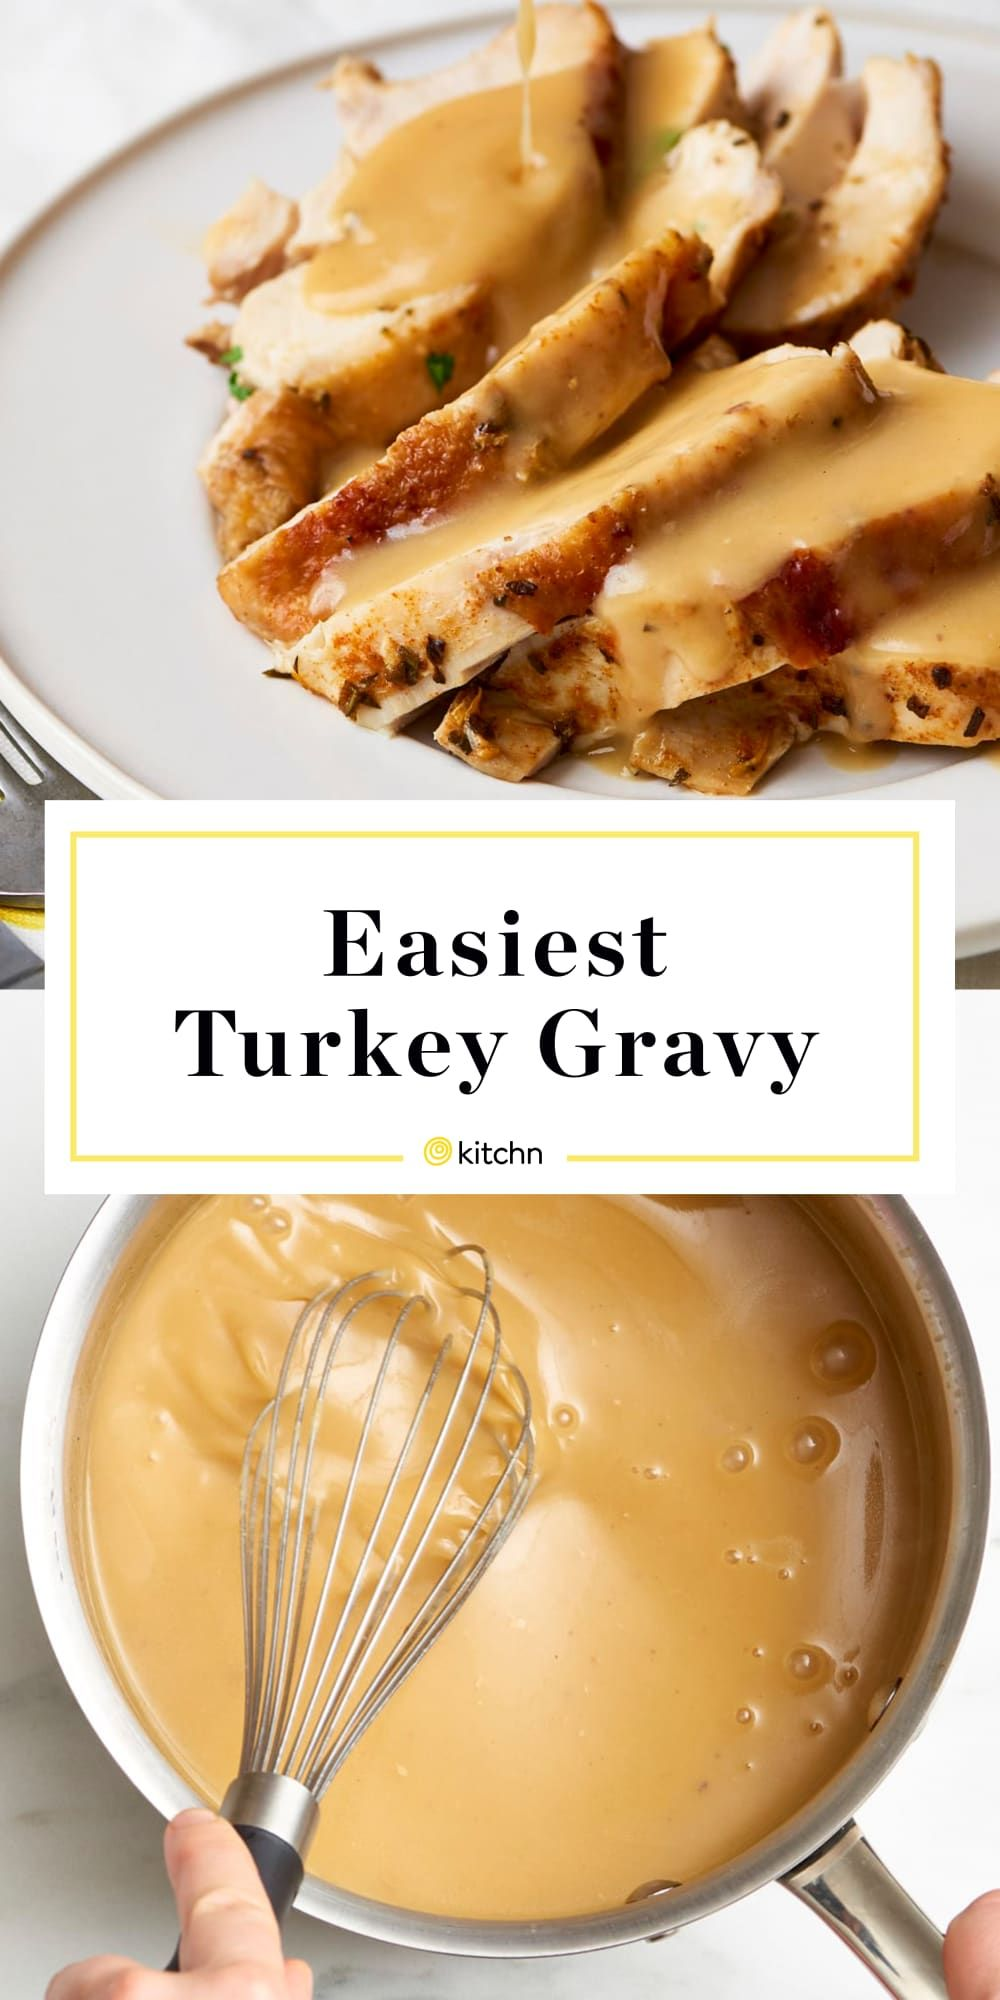 How To Make Turkey Gravy #turkeygravyfromdrippingseasy